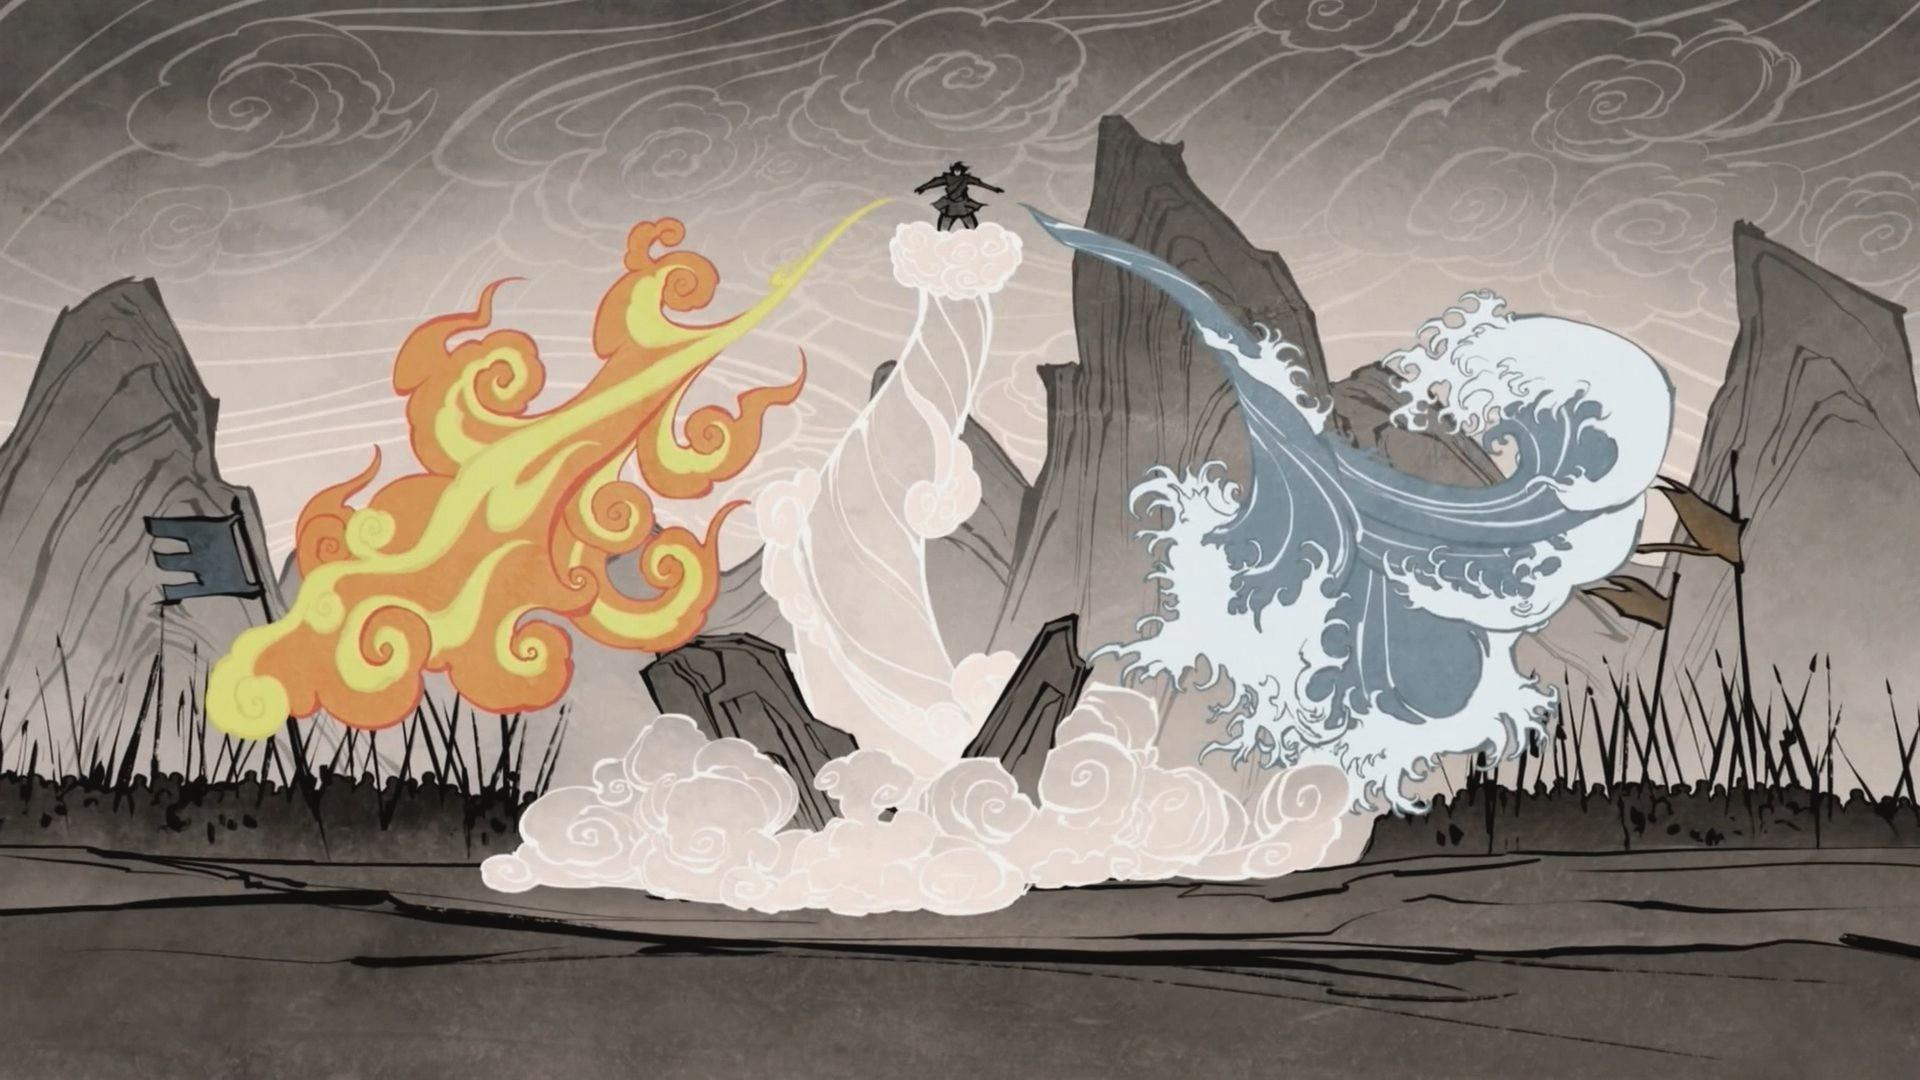 Avatar The Legend Of Korra wallpapers HD quality